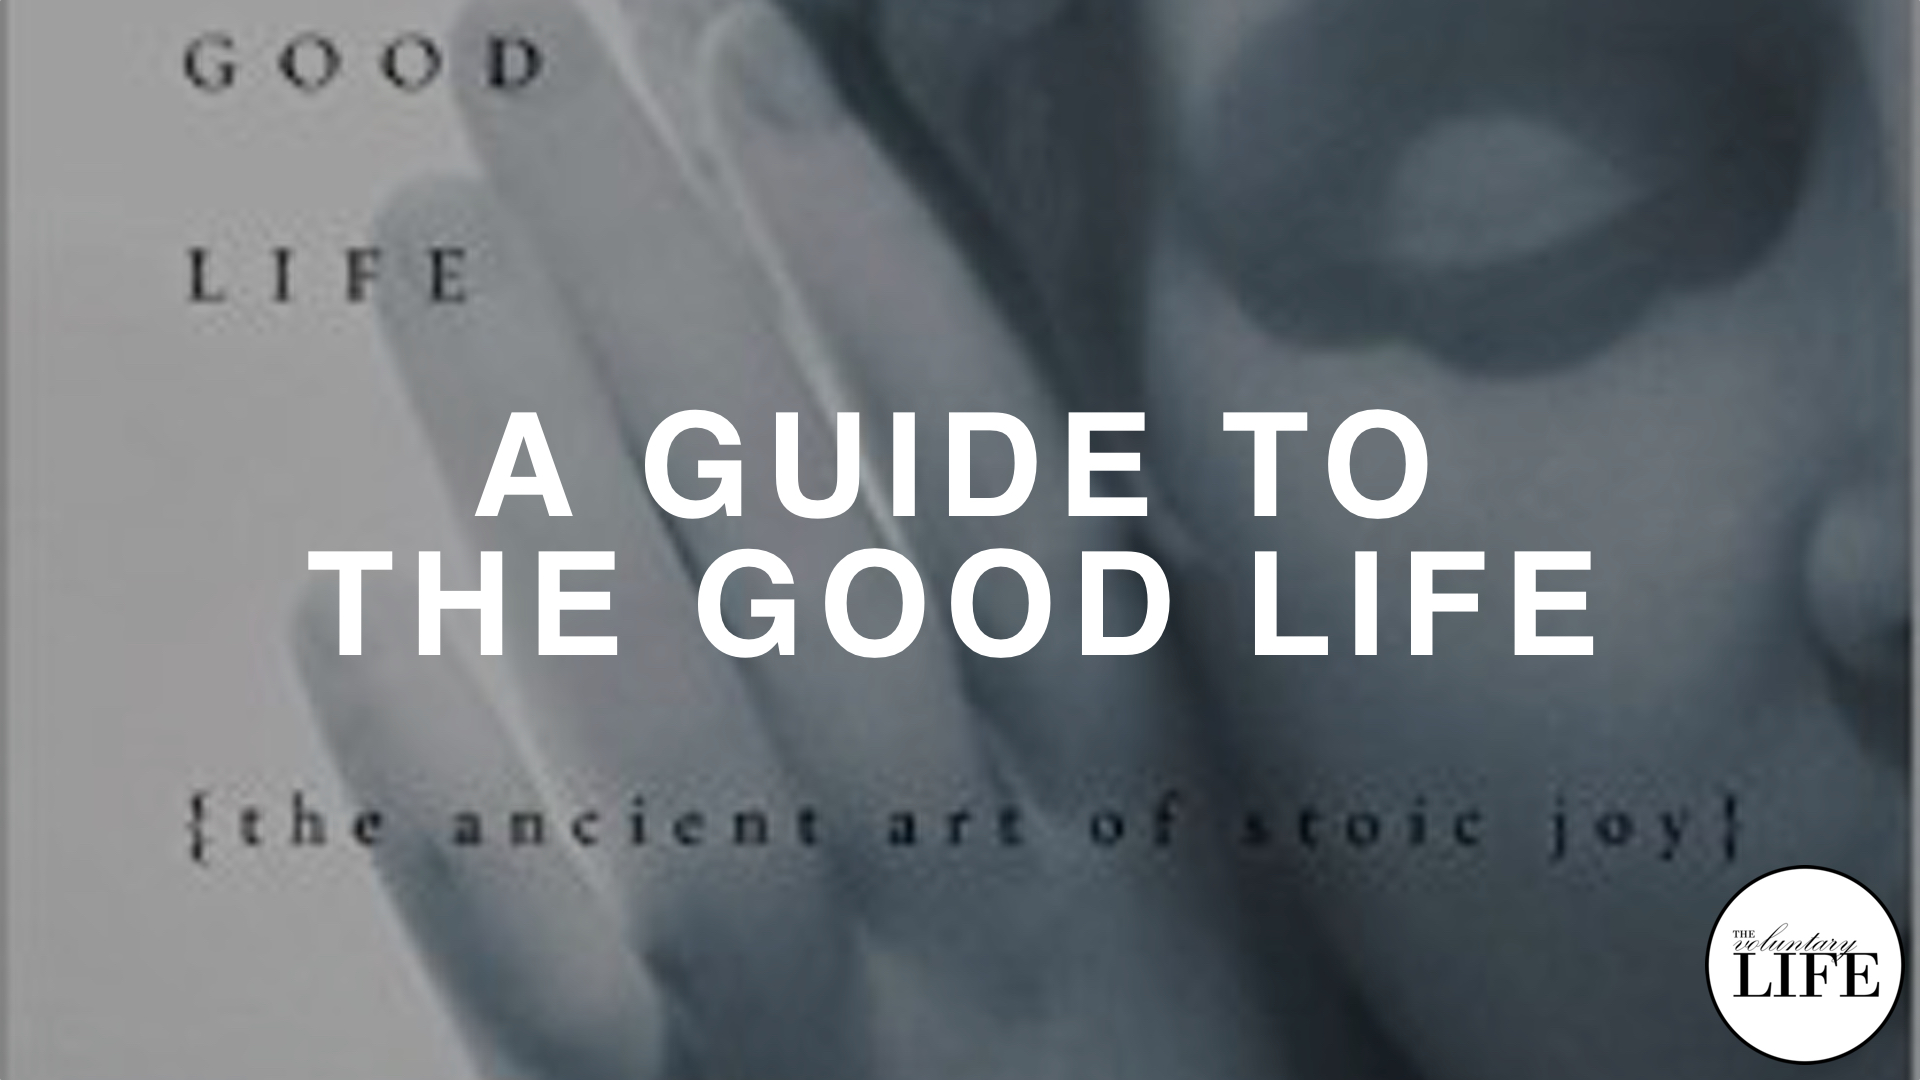 269 Review of A Guide to the Good Life by William B. Irvine